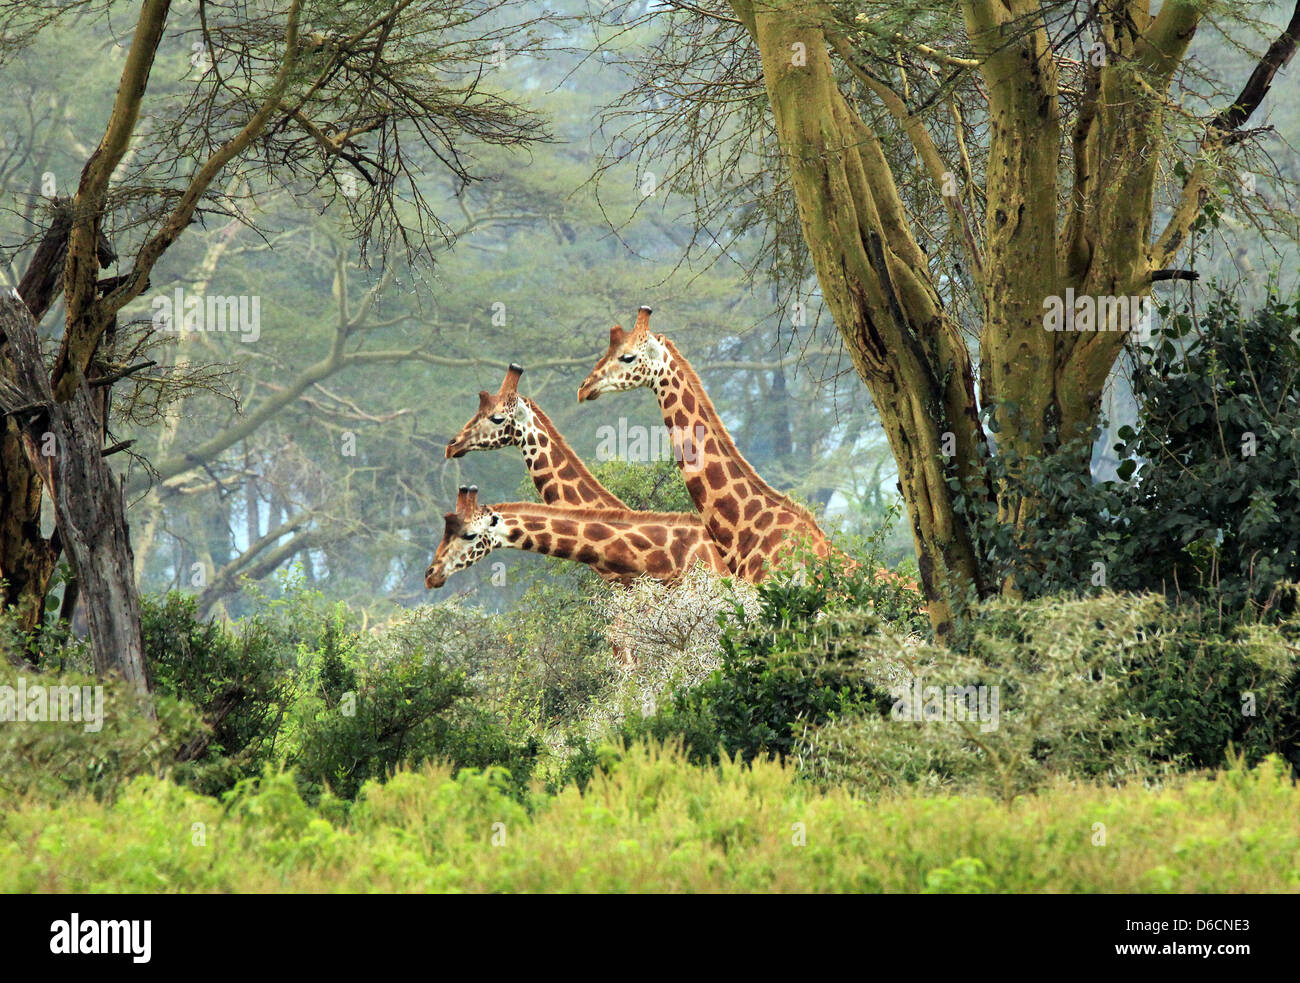 Three Maasai Giraffes (Giraffa Tippelskirchi) in the Bush, Lake Nakuru, Kenya - Stock Image